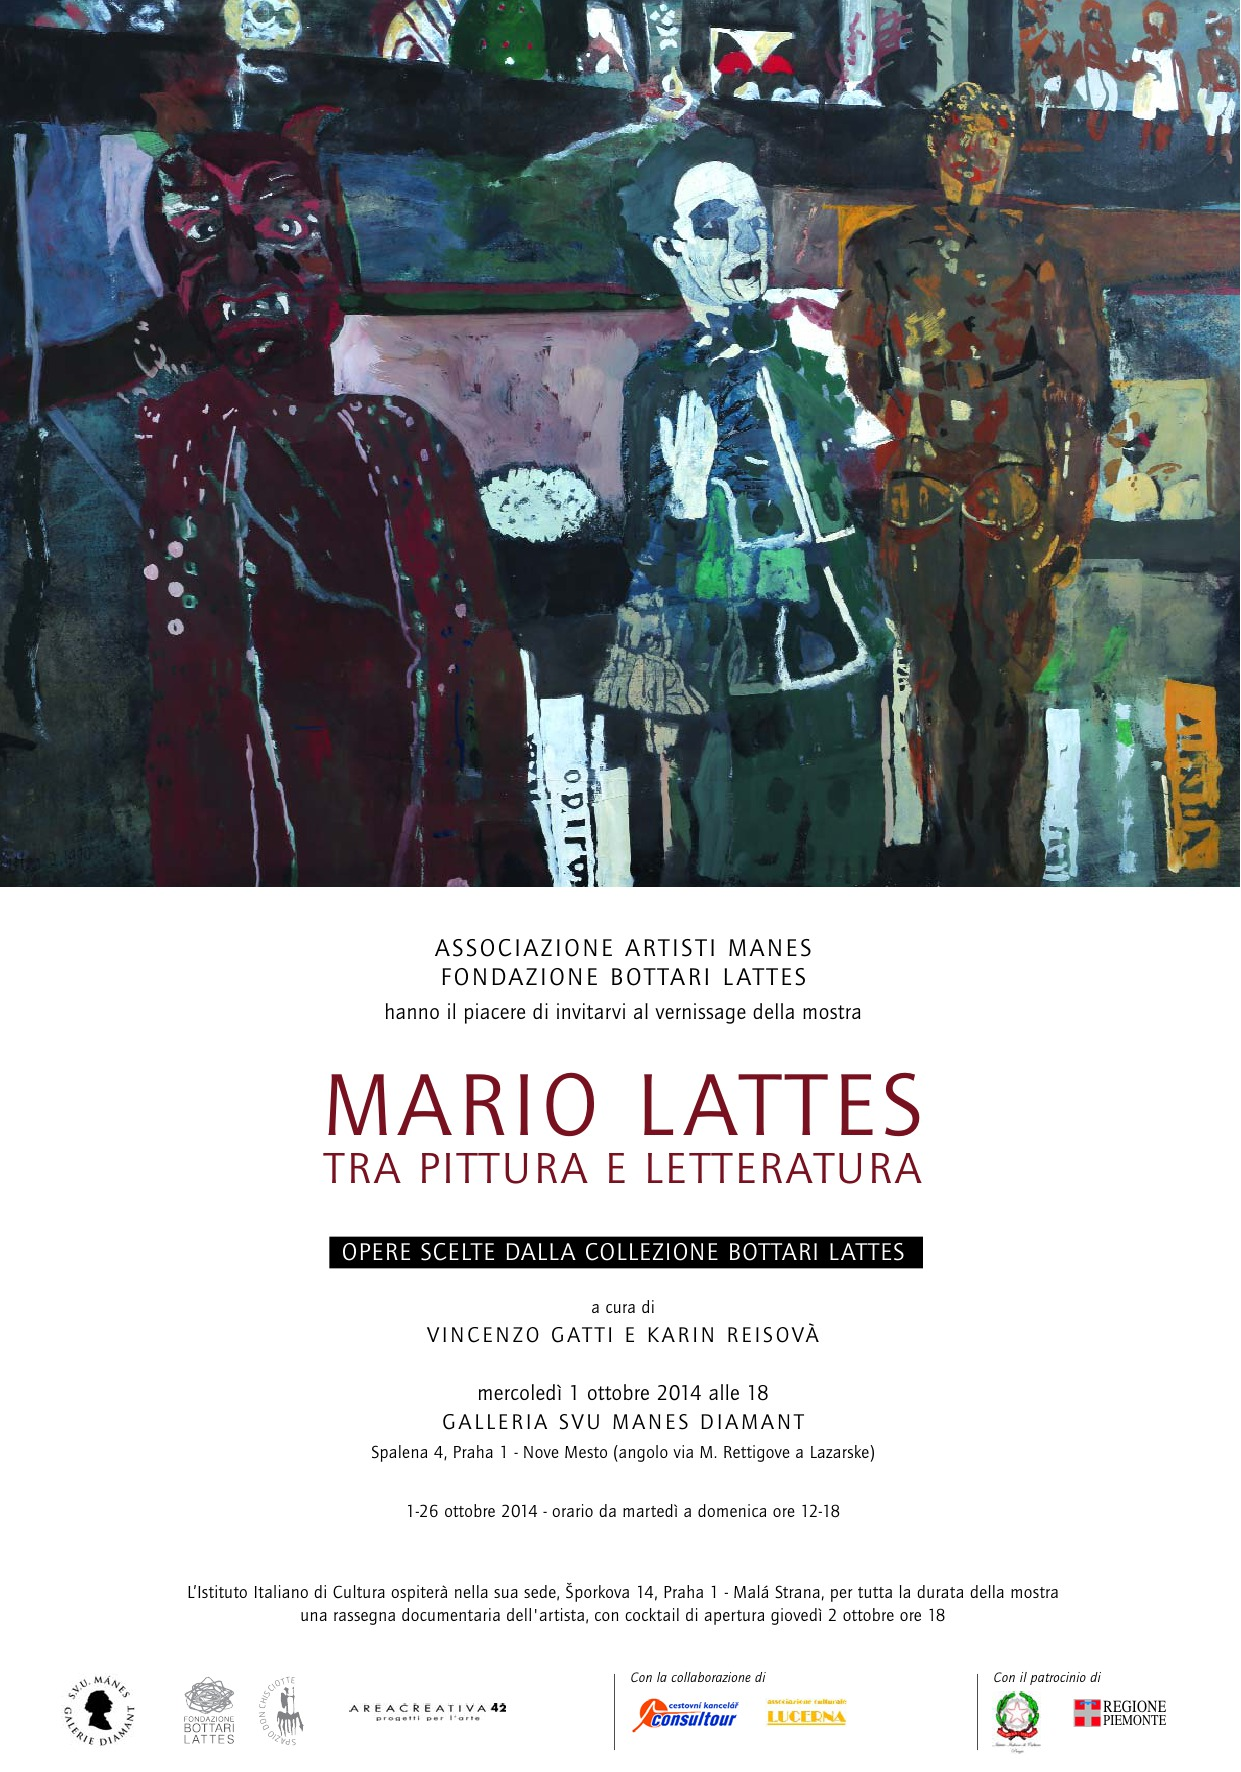 Prague: Mario Lattes, between painting and literature